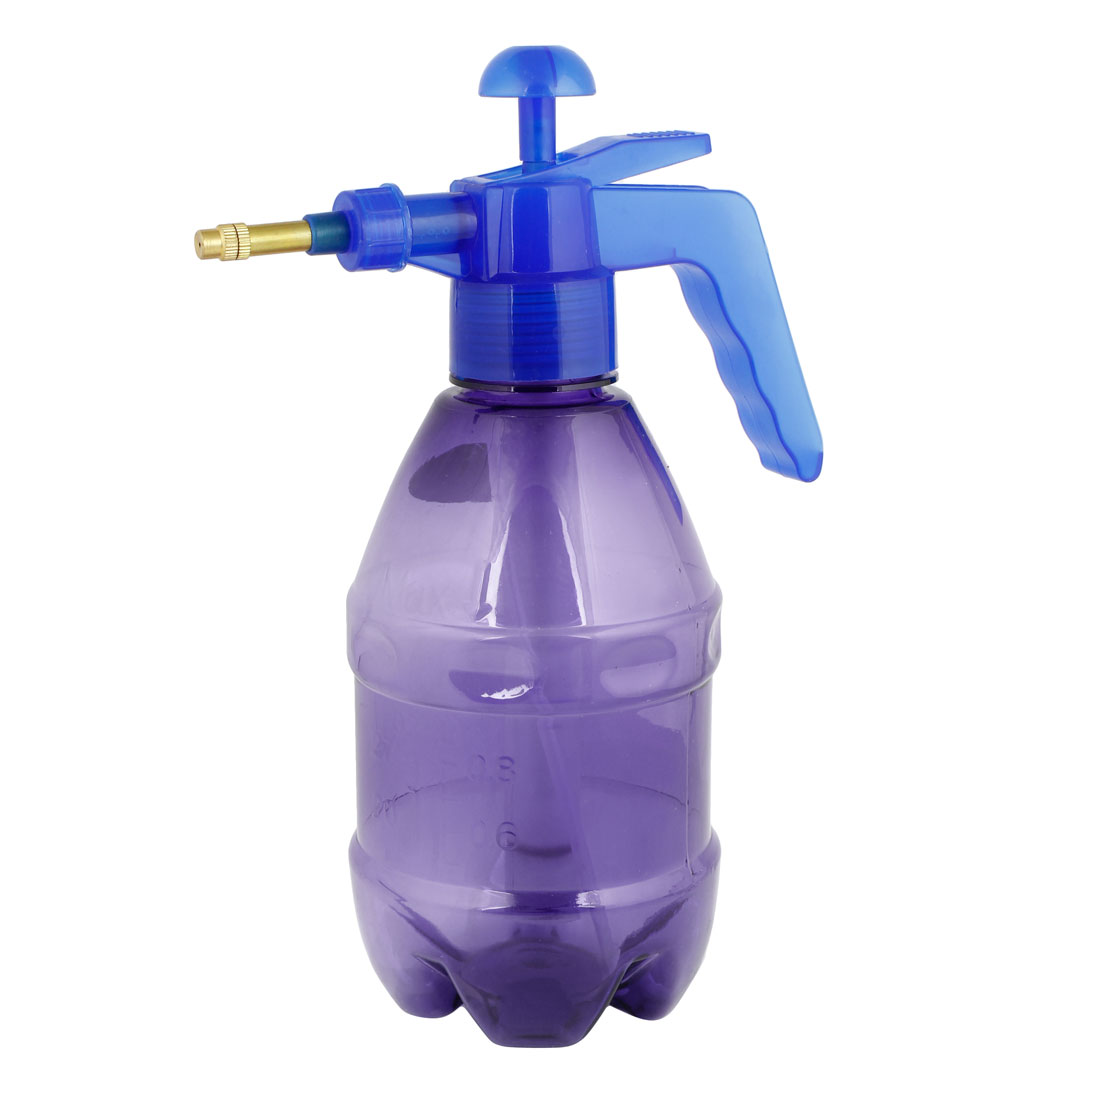 1.5L Capacity Hand Press Watering Sprayer Clear Purple for Garden